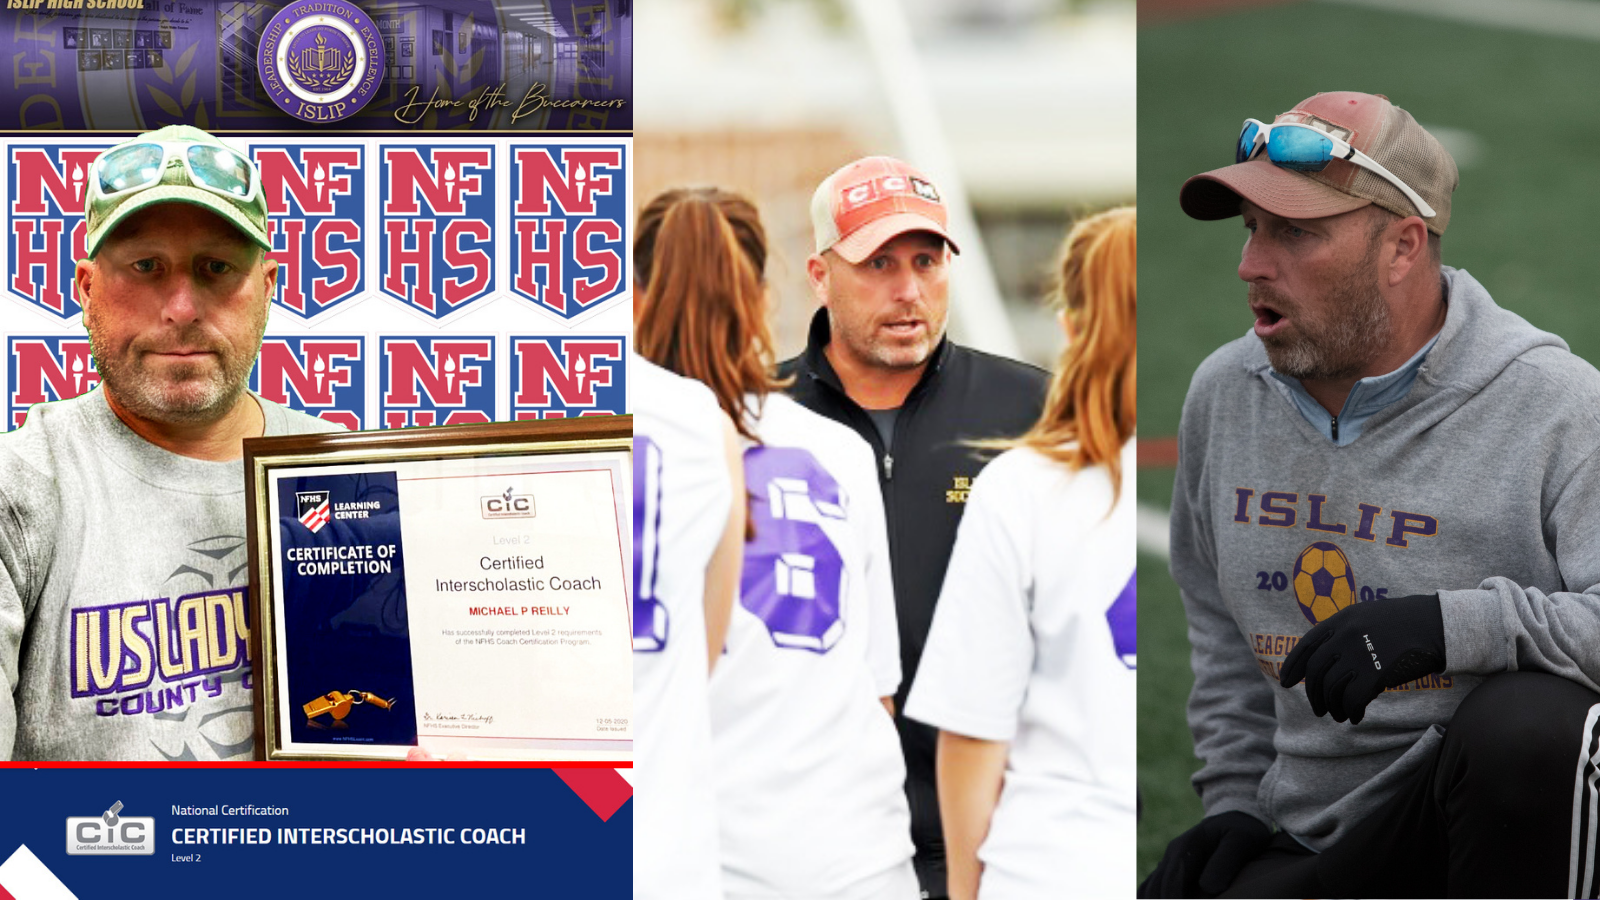 Islip HS coach Mike Reilly earns NFHSS Level II certification